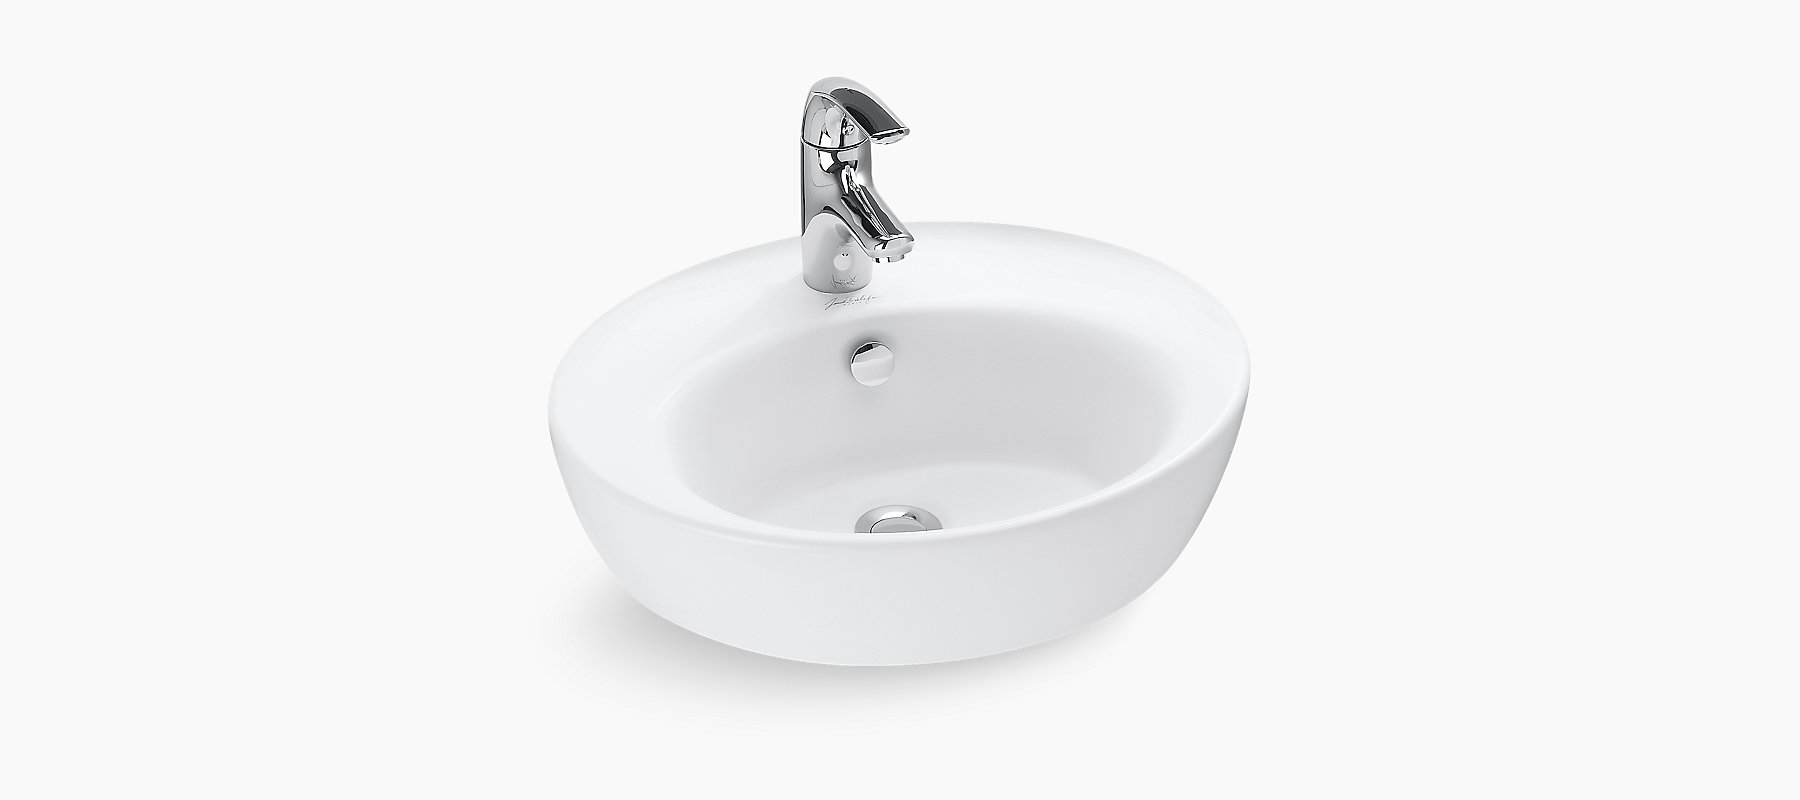 Ove Wall Hung With Pureclean Bidet Seat K 99994in Kohler